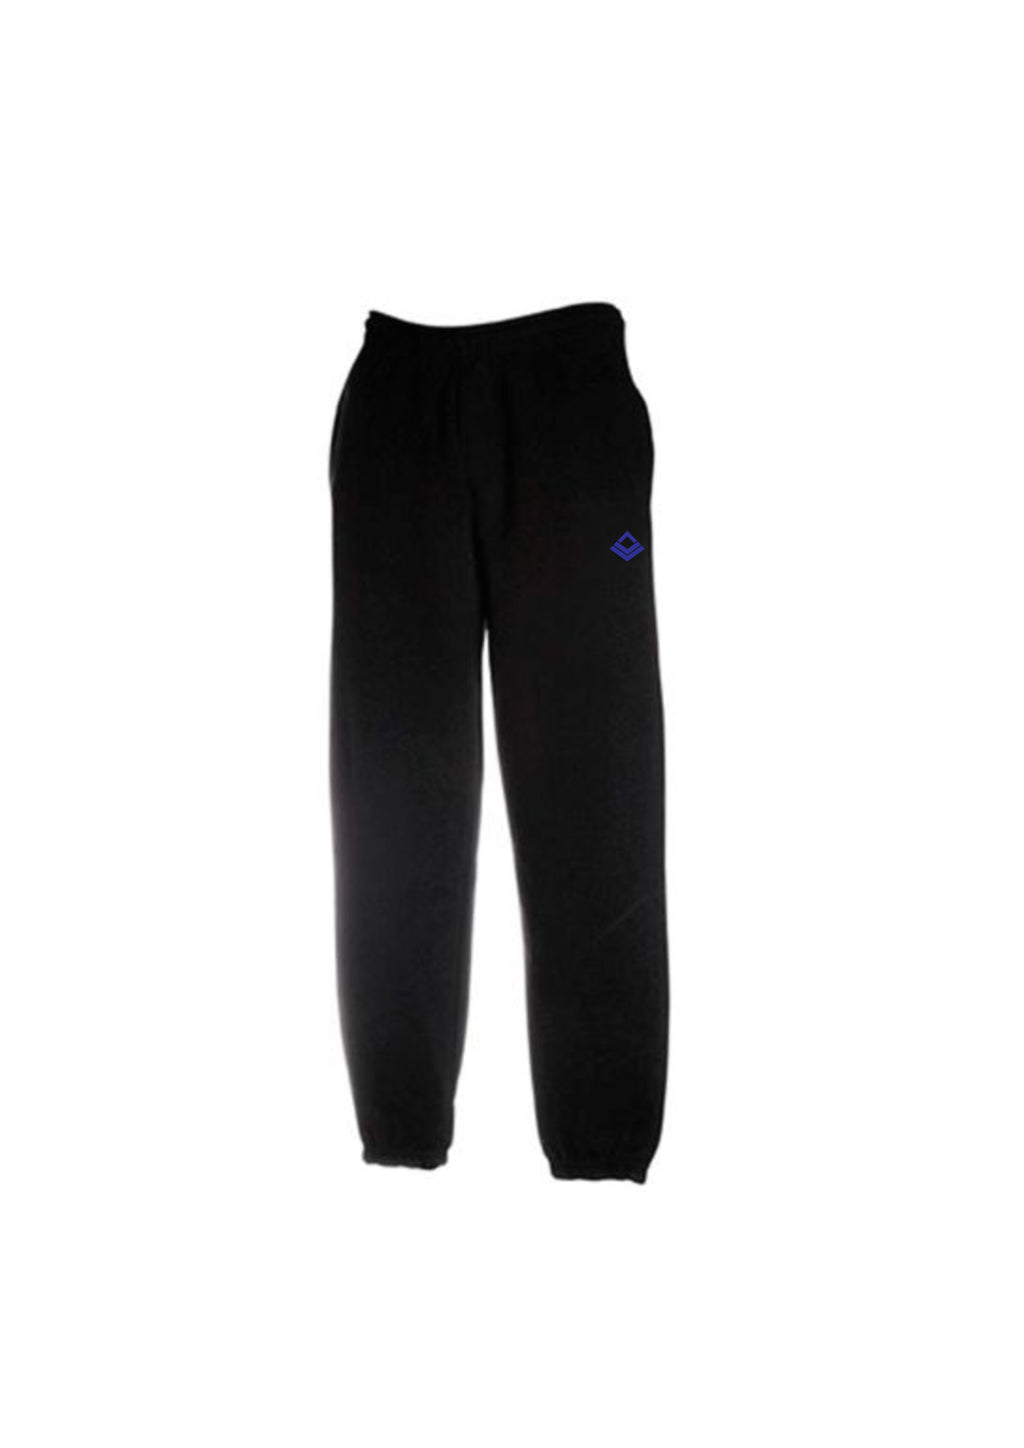 Swaggerlicious Premium Black Jogging Pants with Dark Blue Logo